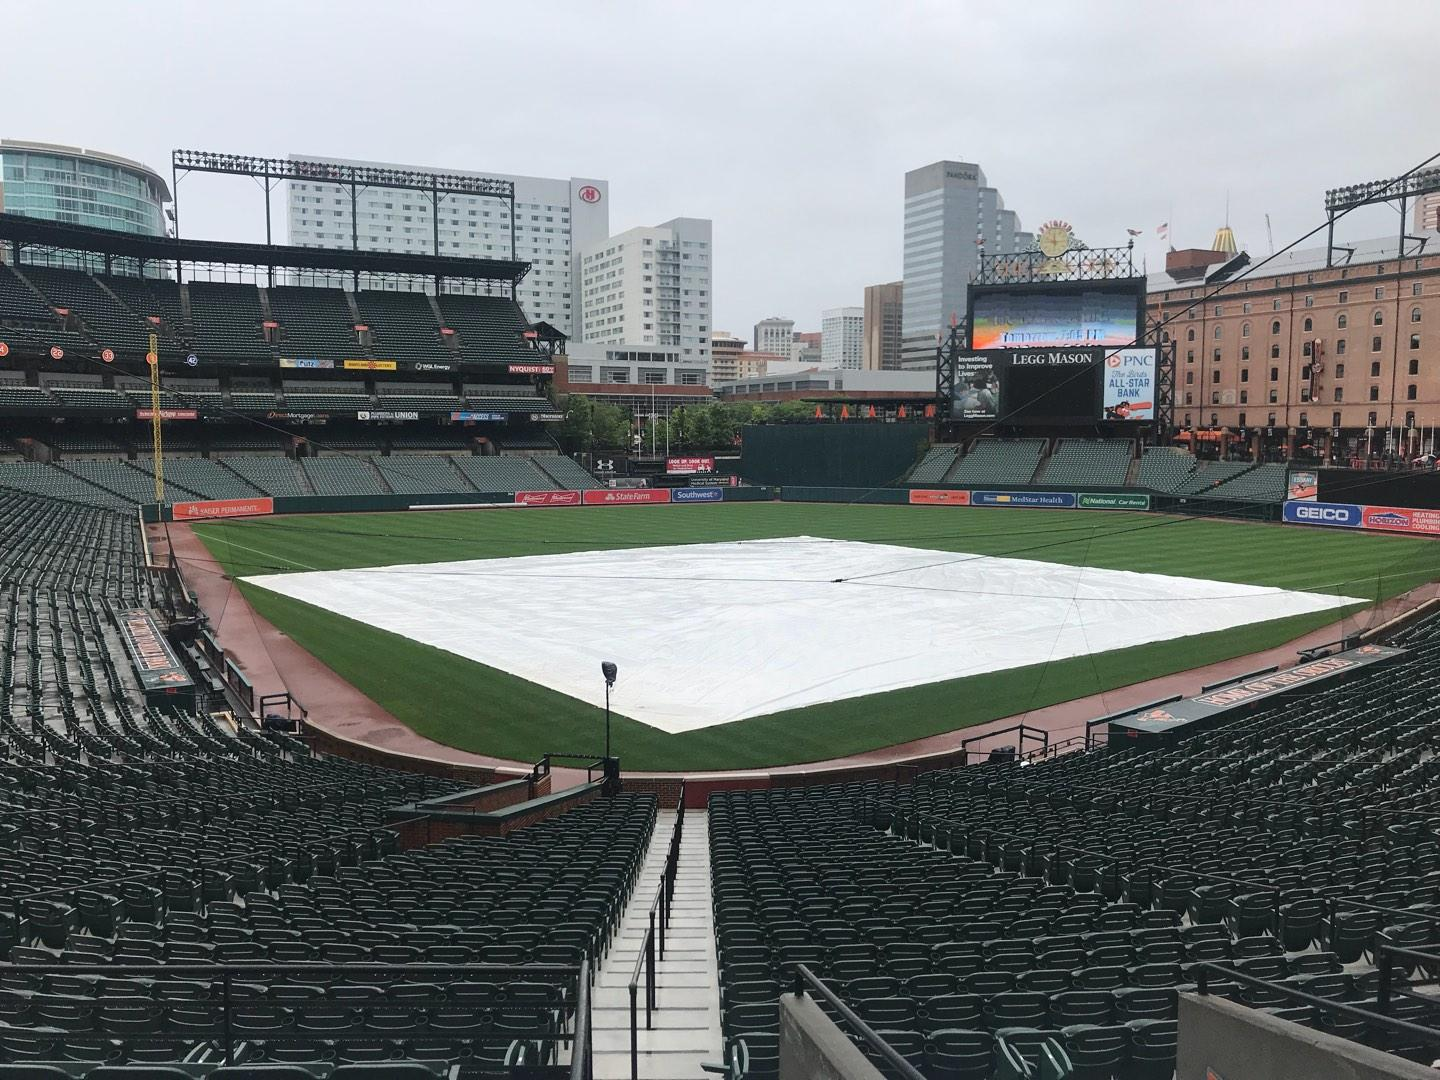 Oriole Park at Camden Yards Section 35 Row 1